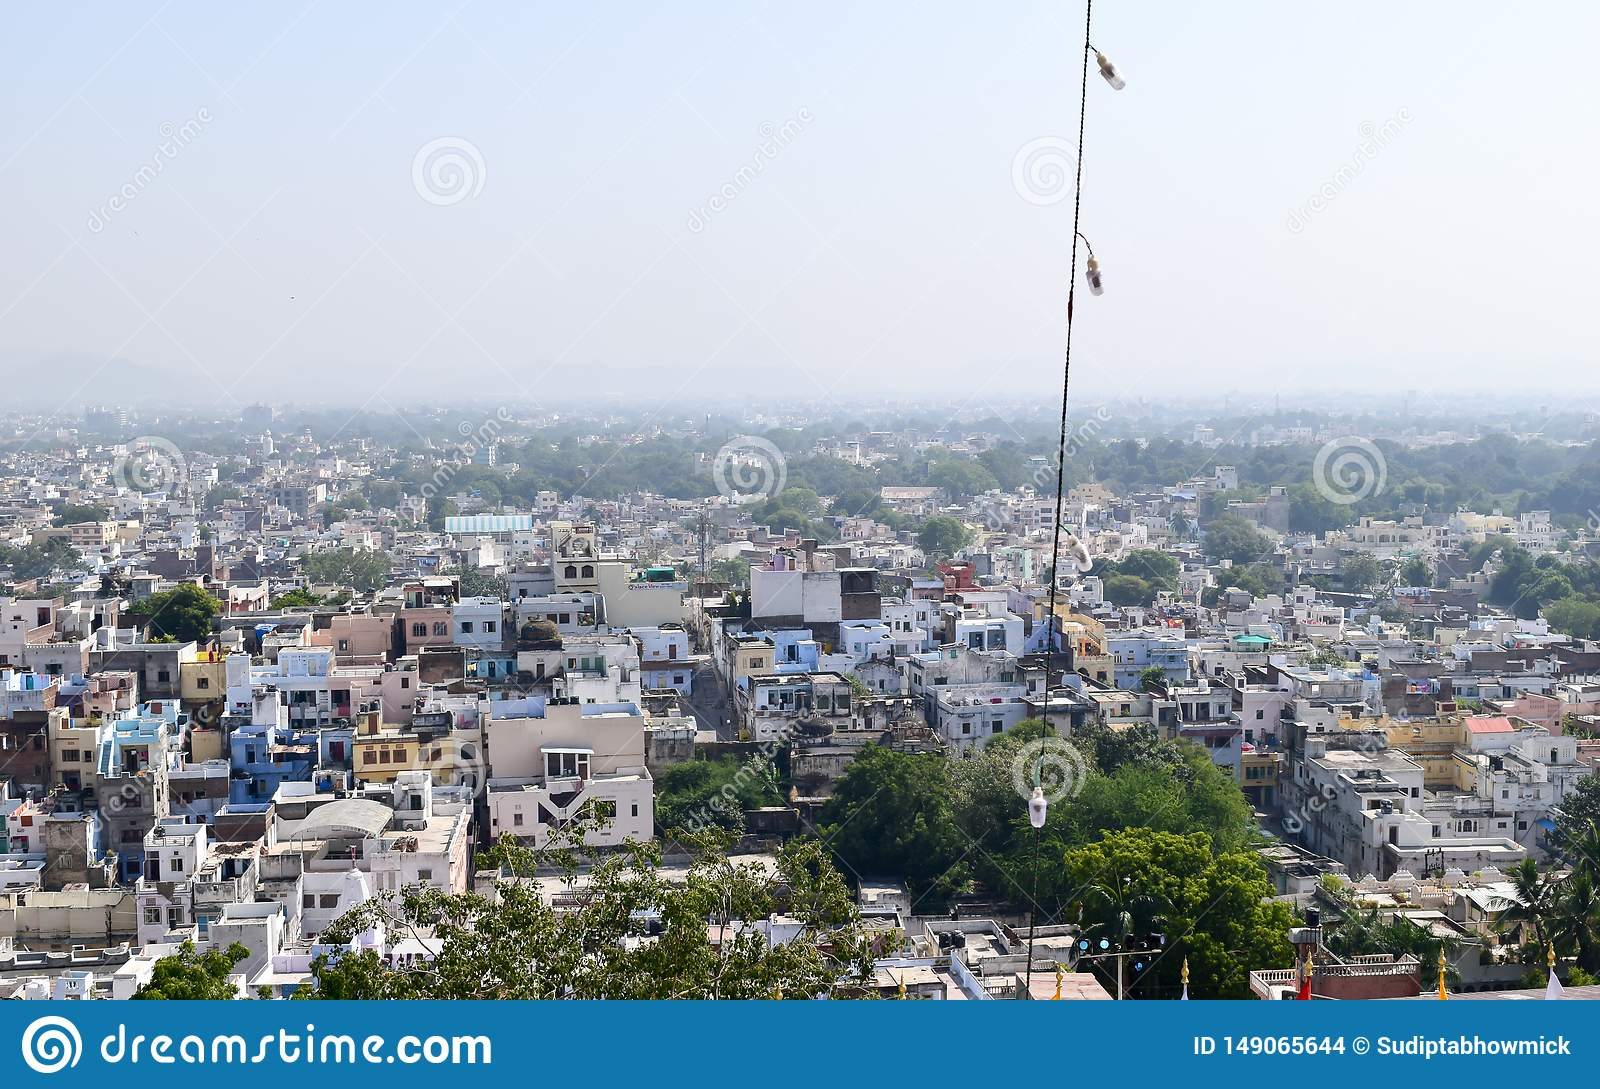 Udaipur, Rajasthan, India May 2019 - The beautiful panoramic landscape Aerial view of Udaipur City skyline. Lots of buildings can